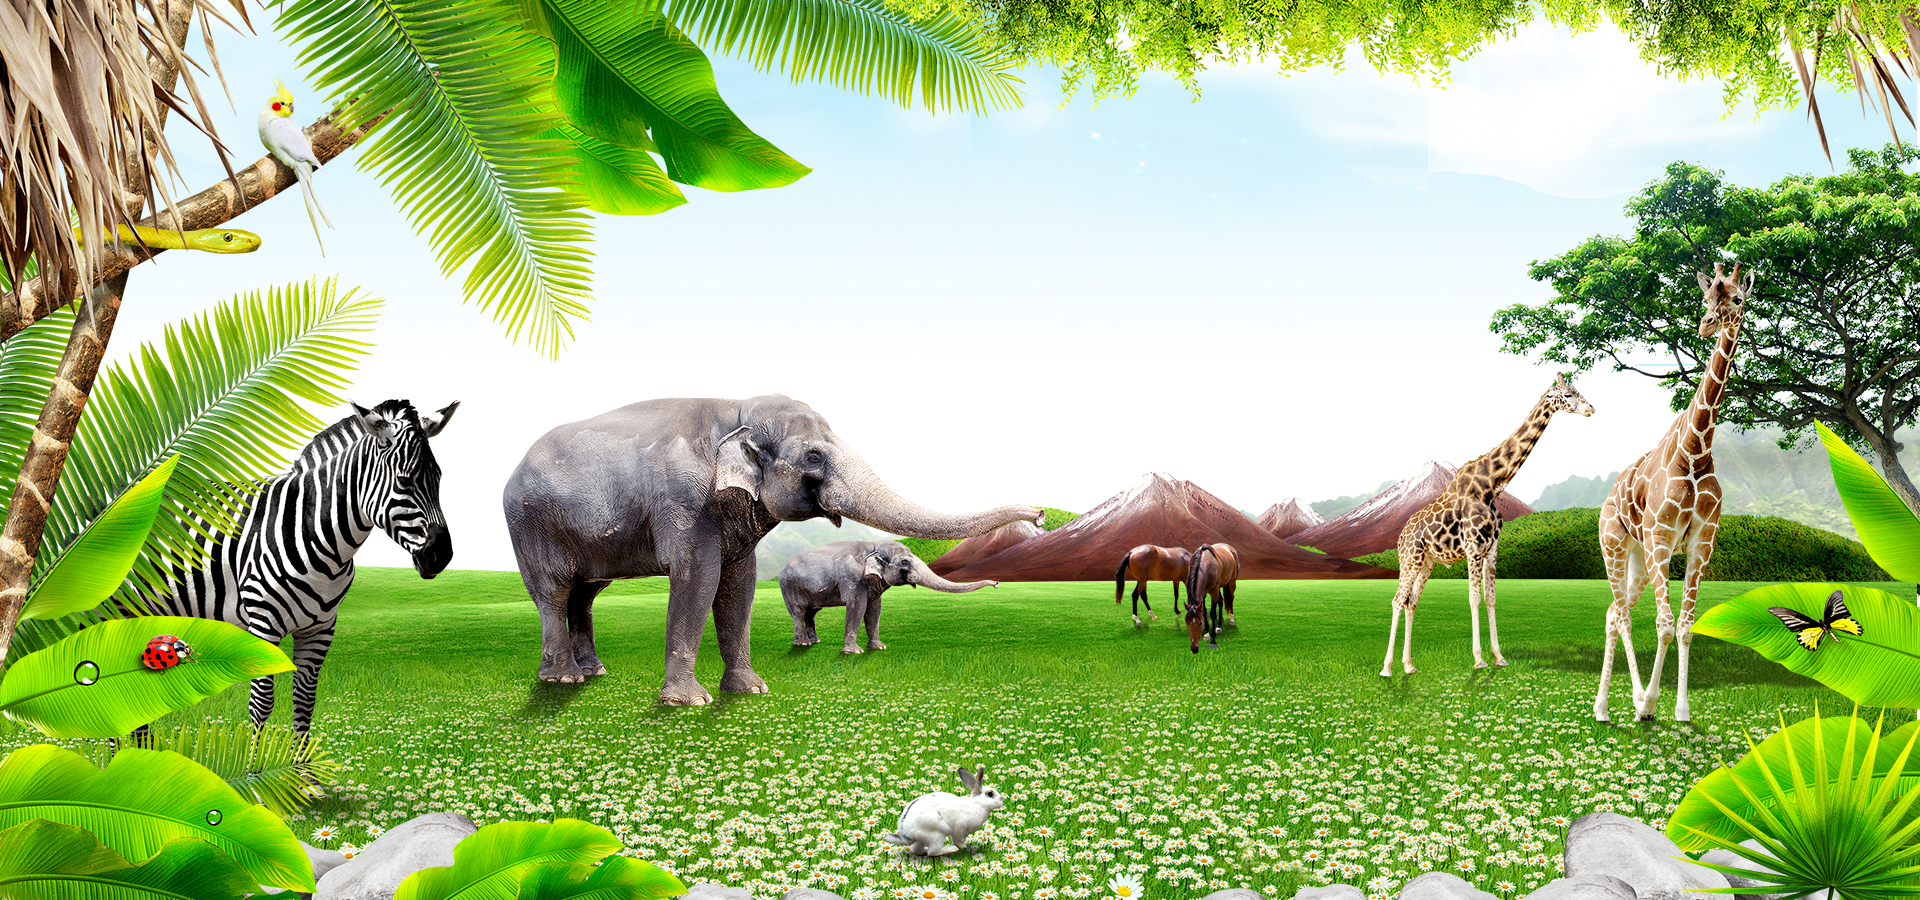 Download Wallpapers Download 2790x2547 Animals Grass: Natural Green Grass Animal Elephant Zebra Horses Trees